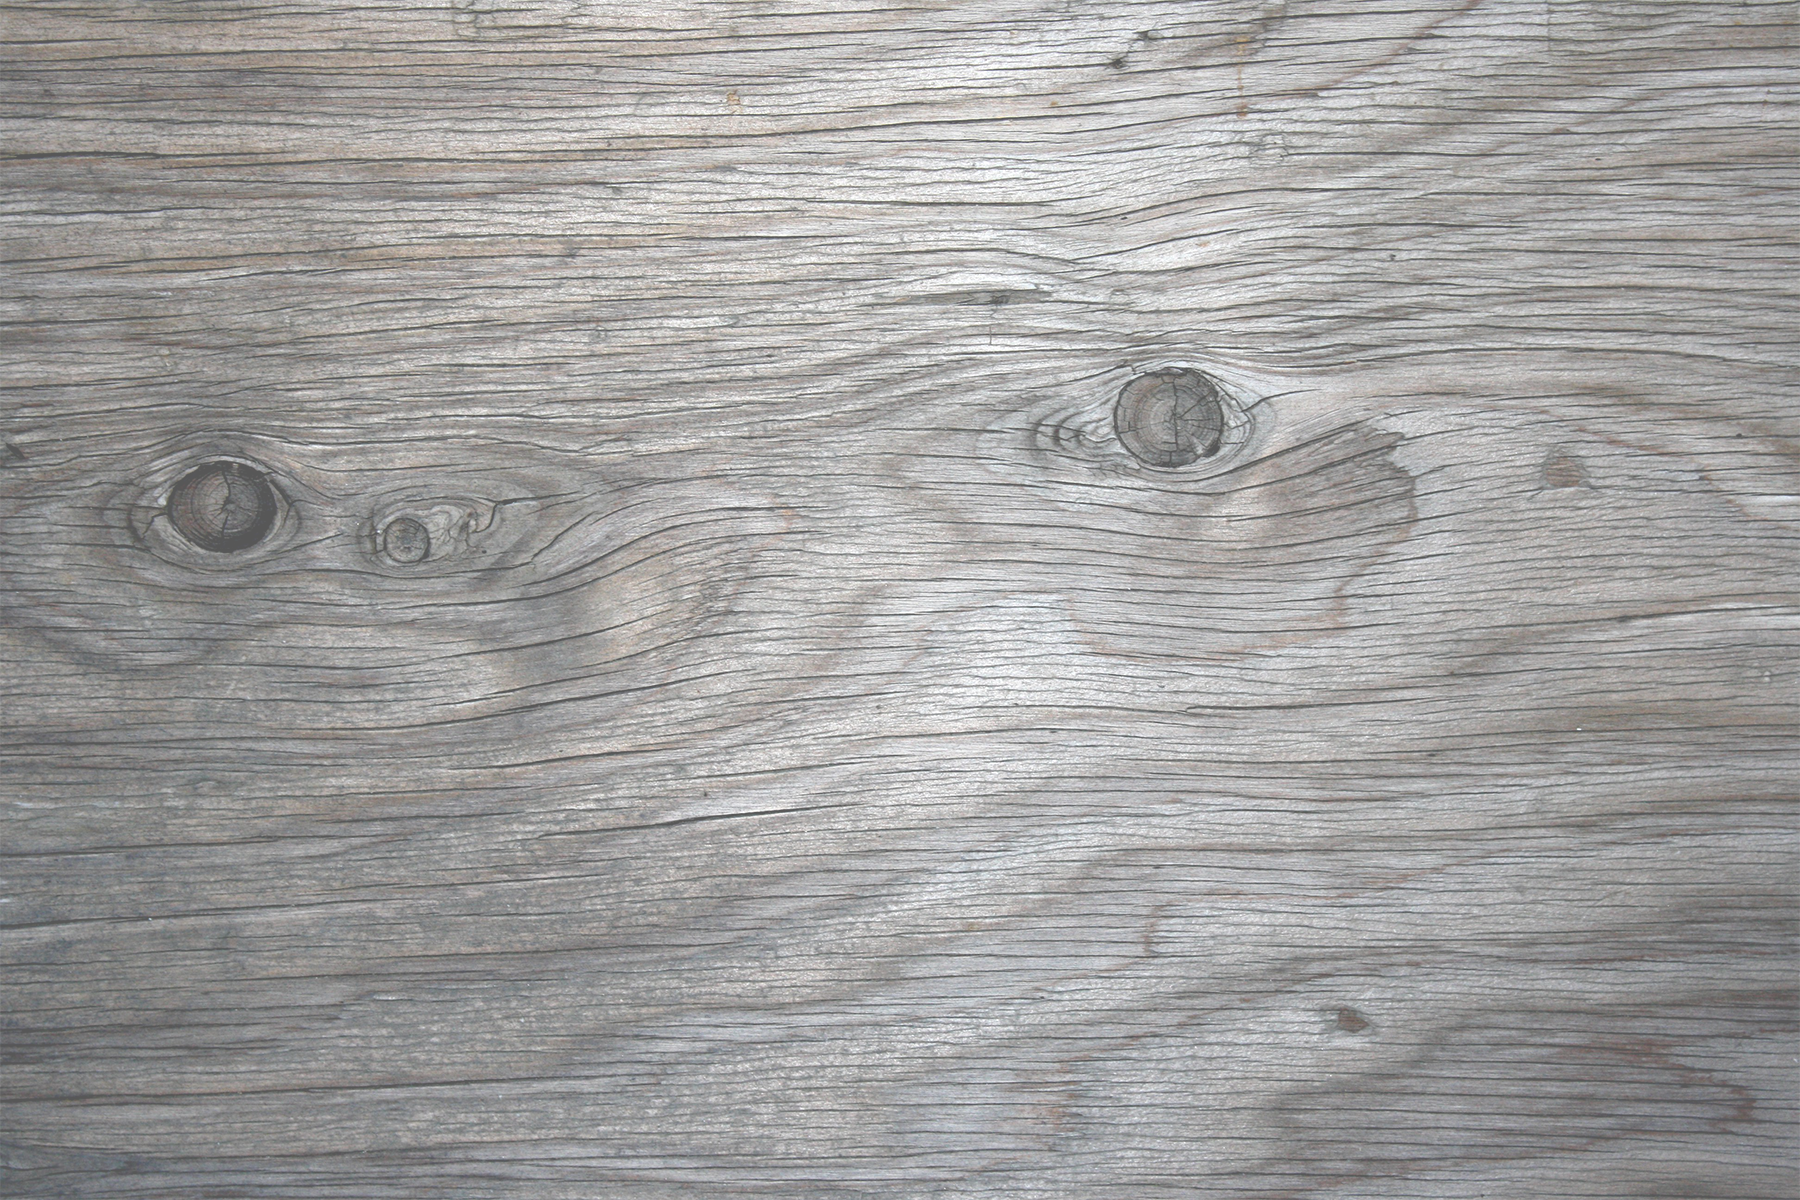 Samll wood grain texture. Paper clipart weathered